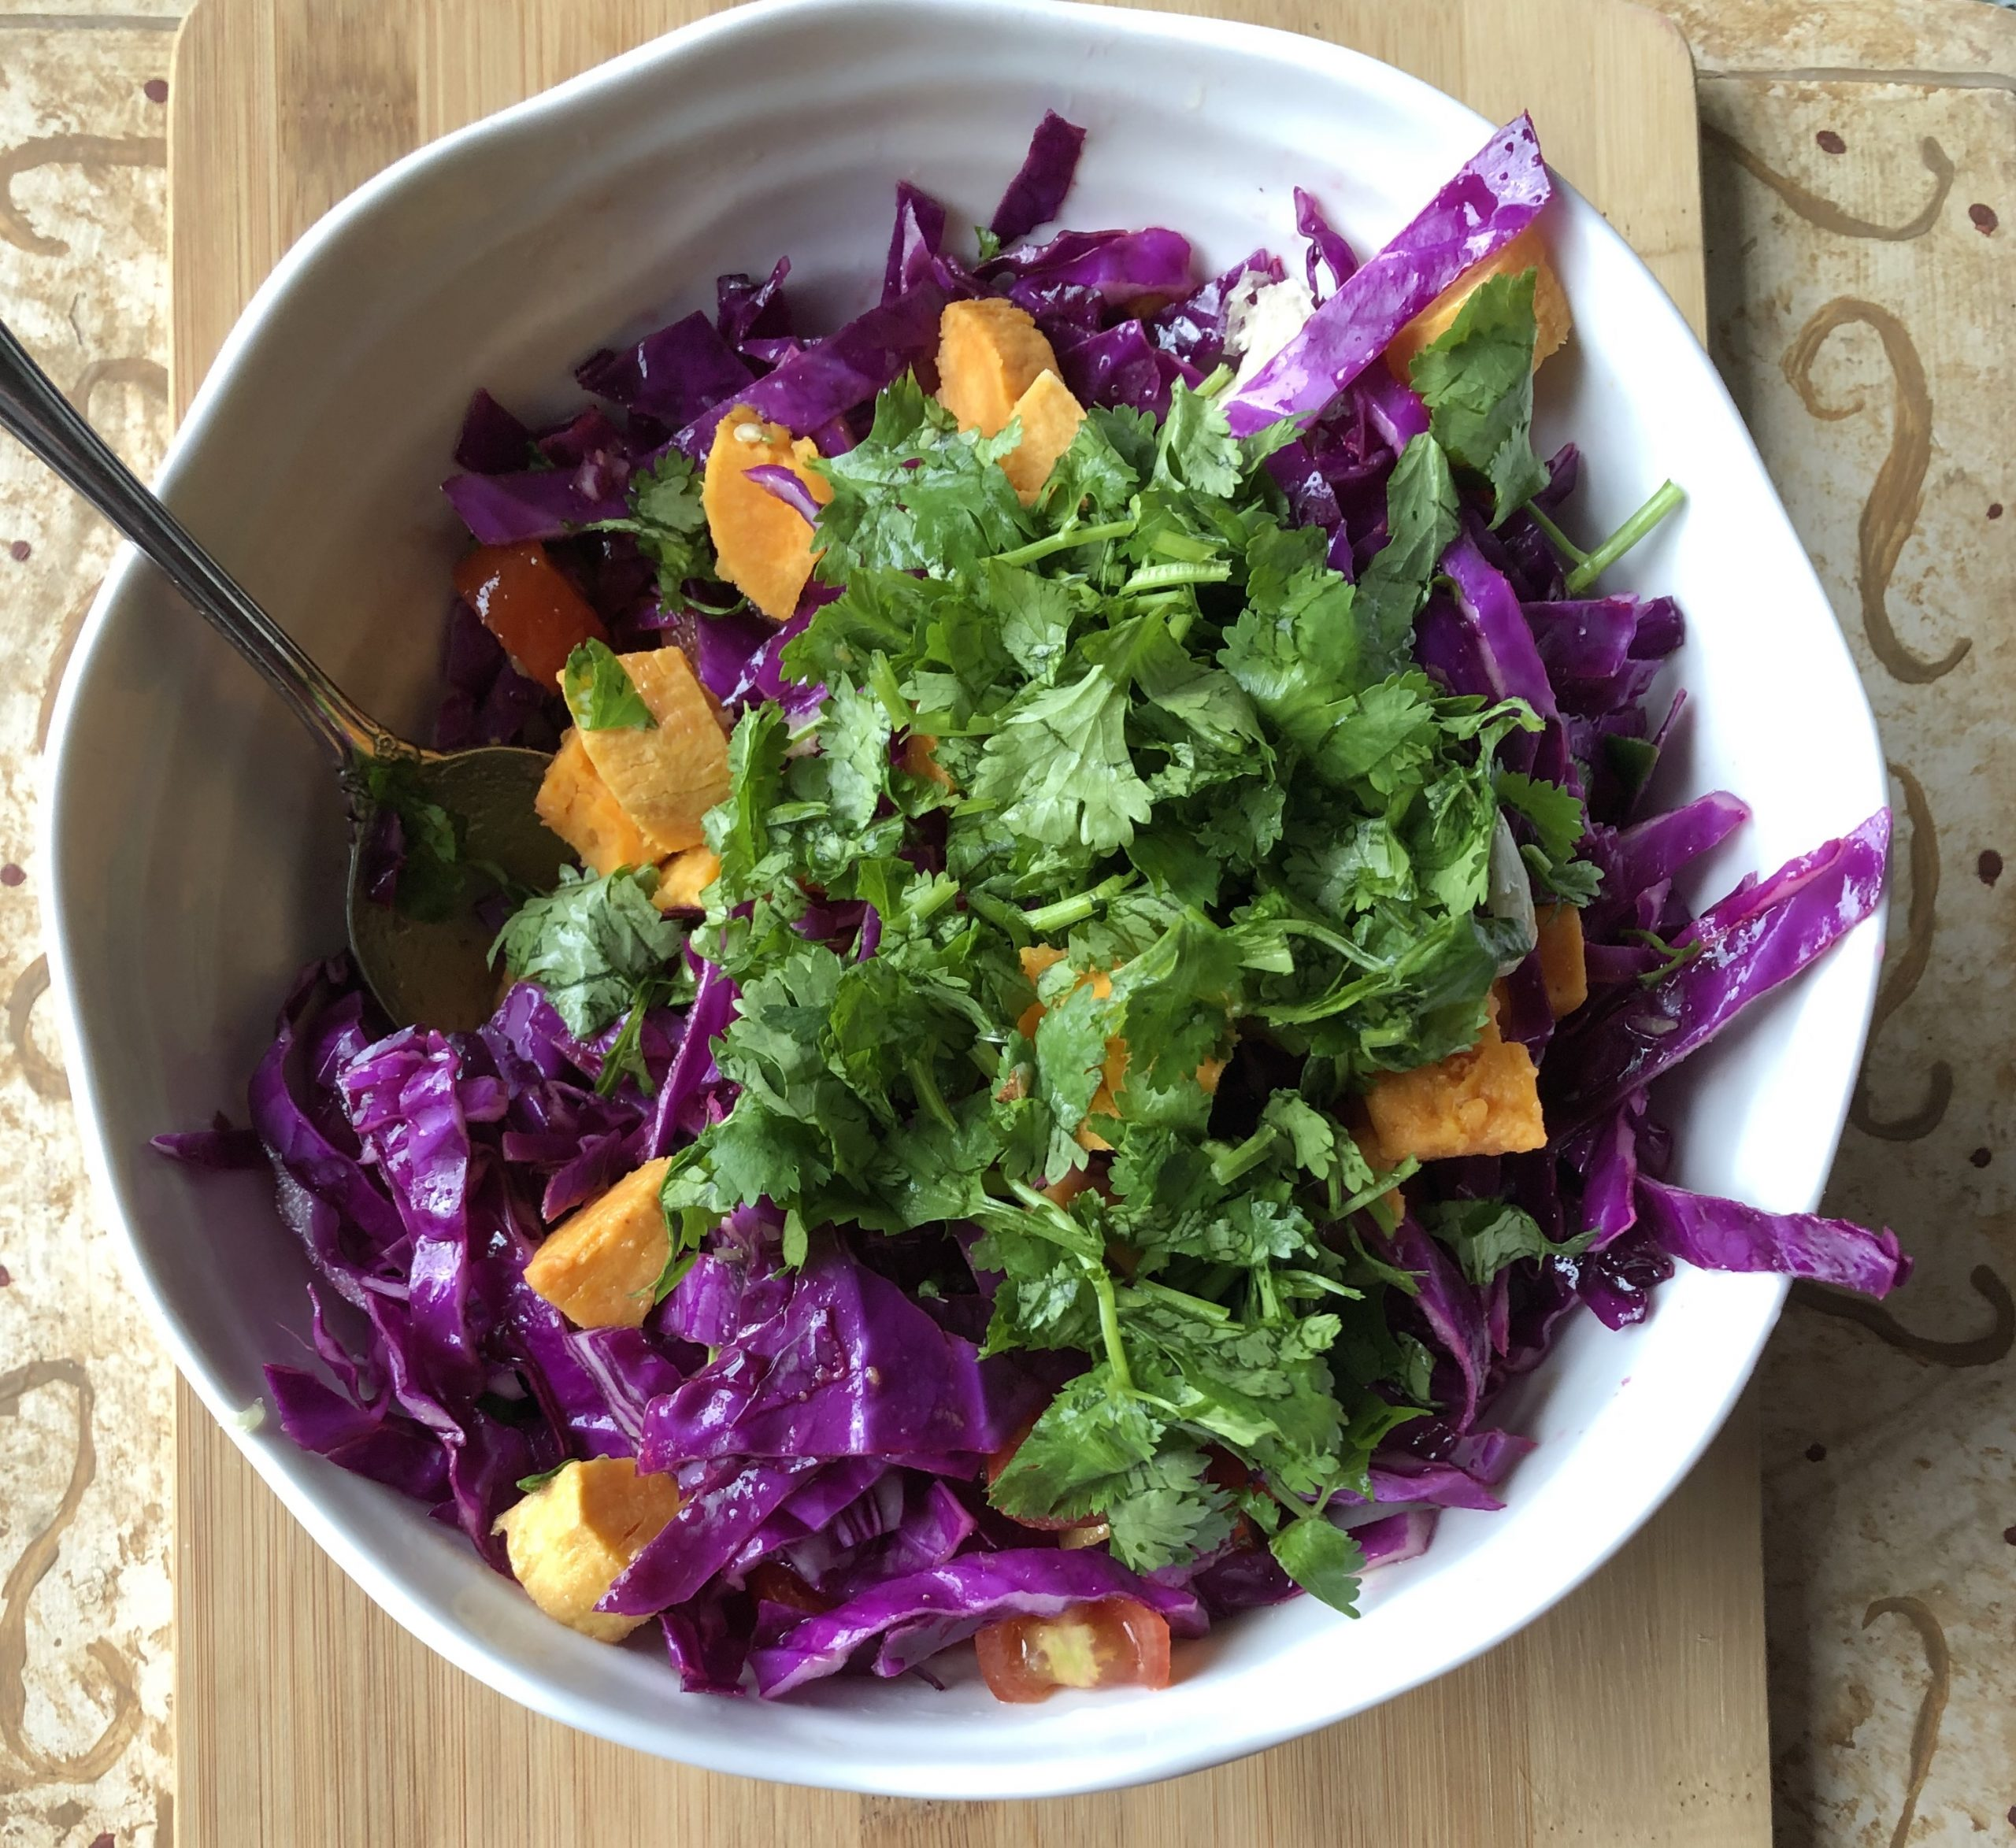 Purple Foods Rich in Polyphenols